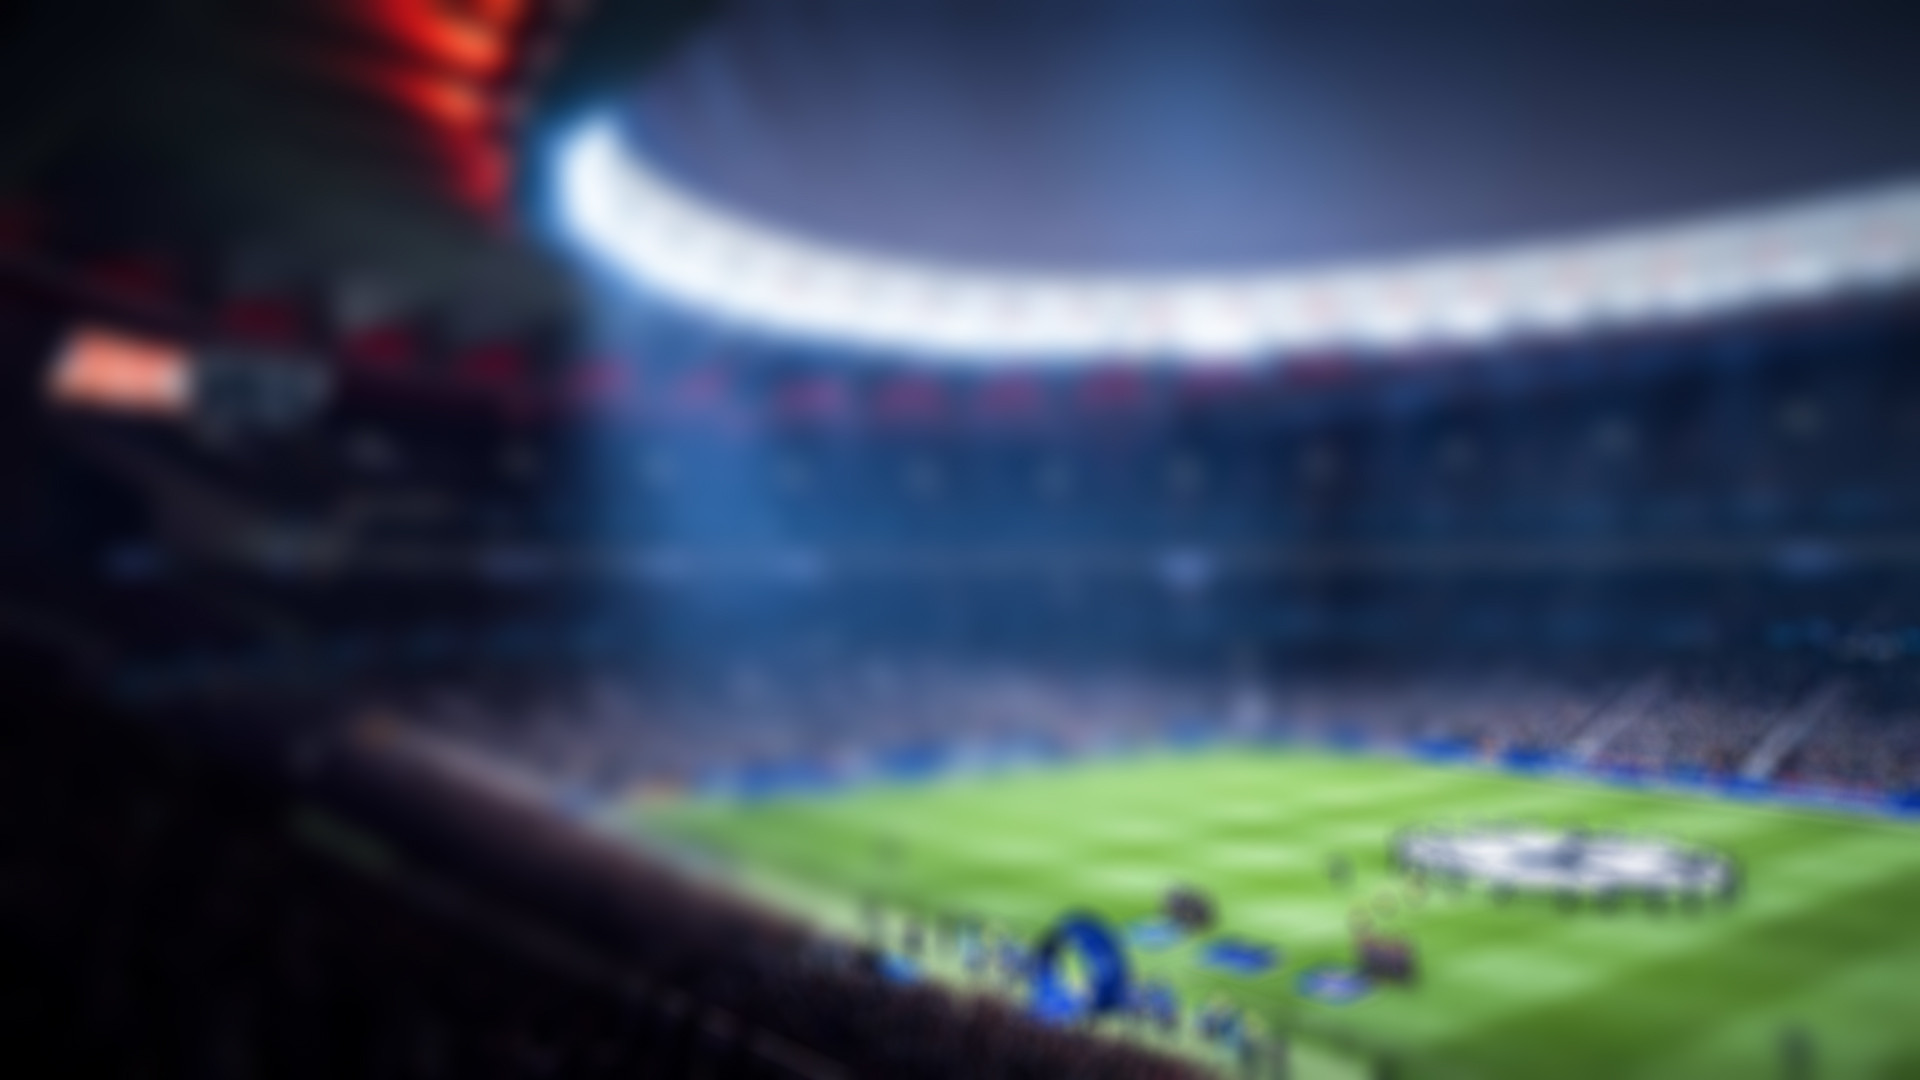 FIFA 19 - Soccer field background art